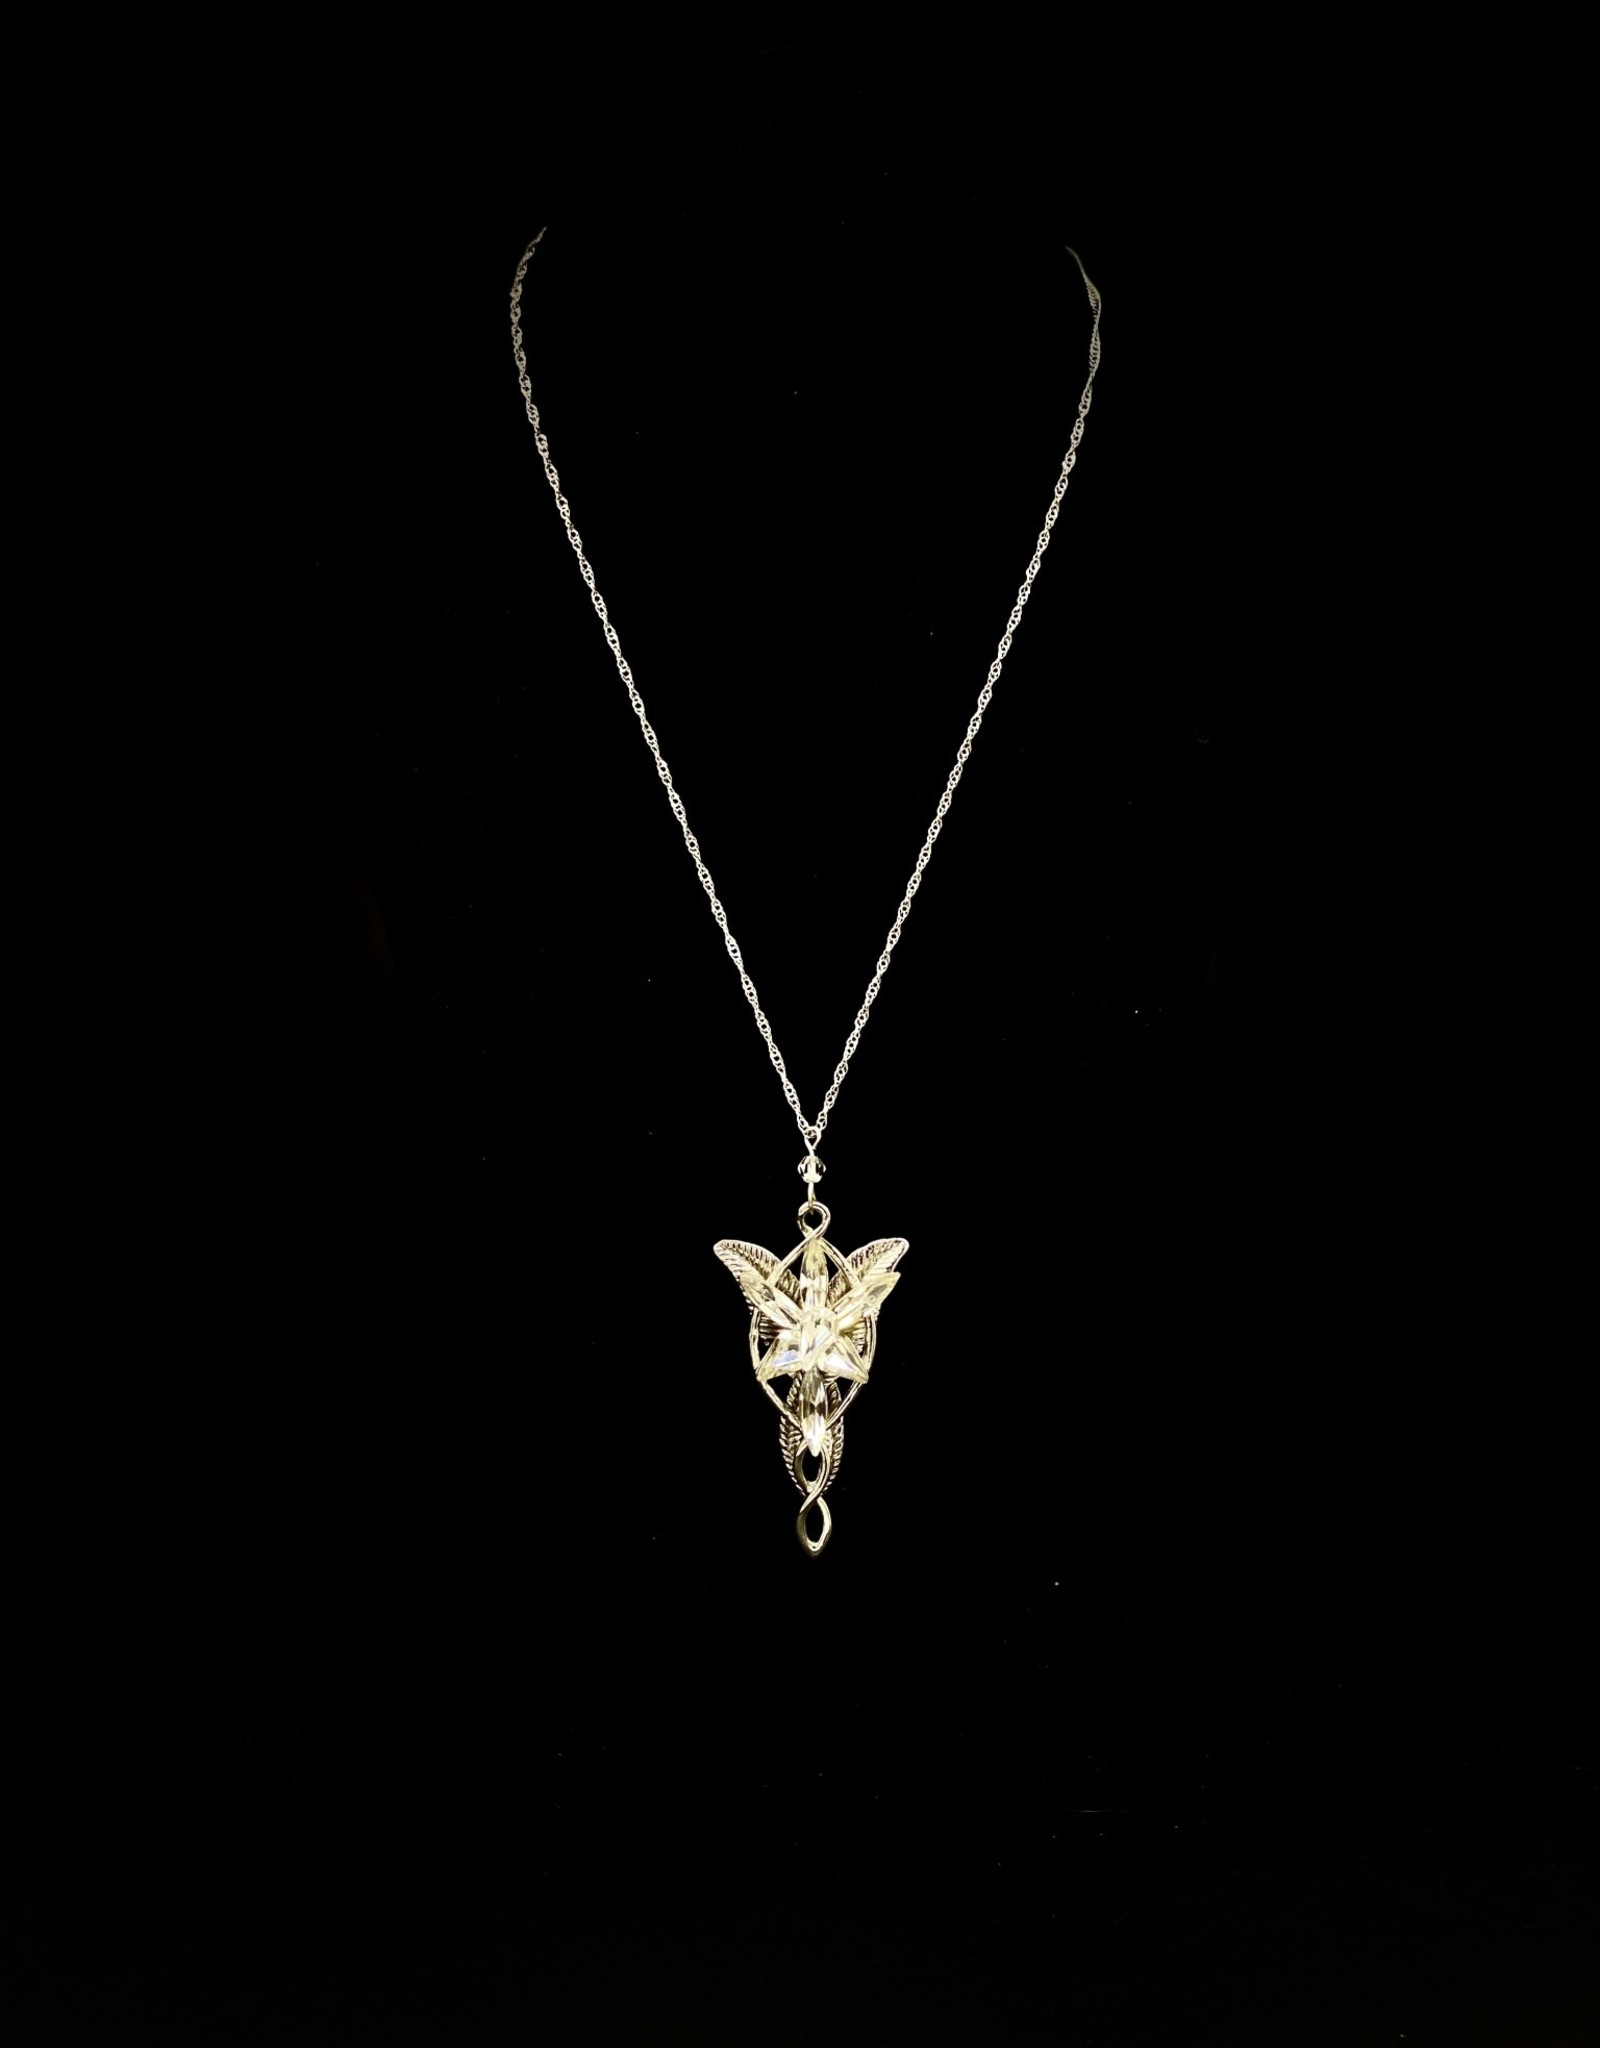 Jewelry - Lord of the Rings Elvish Necklace